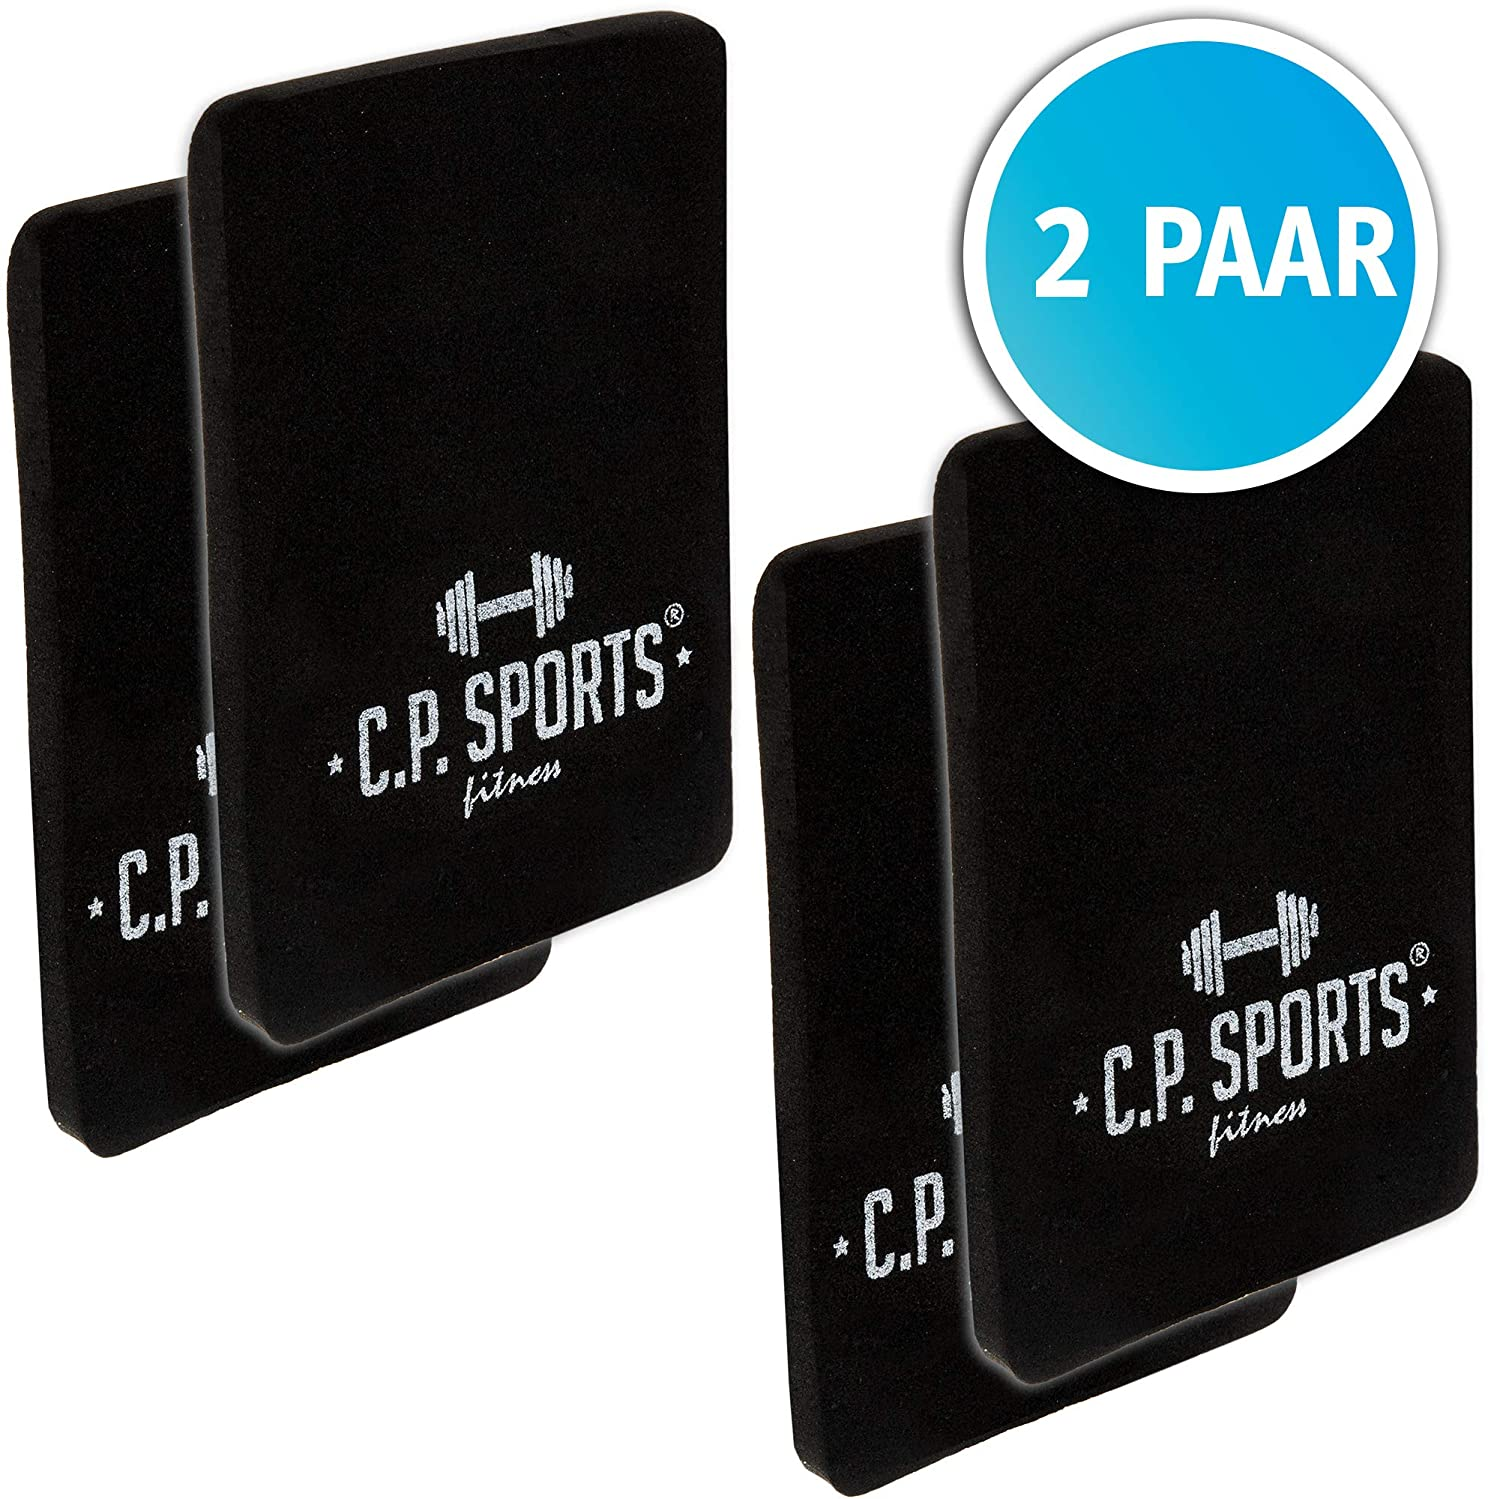 C.P. Sports Griffpolster 2er Set (2 Paar) 6mm 10x14 Doppelpack – Profi Griffpads ideal für Bodybuilding, Fitness und Krafttraining | Powerpads Grip Pads Unisex (Bodybuilder Gold)